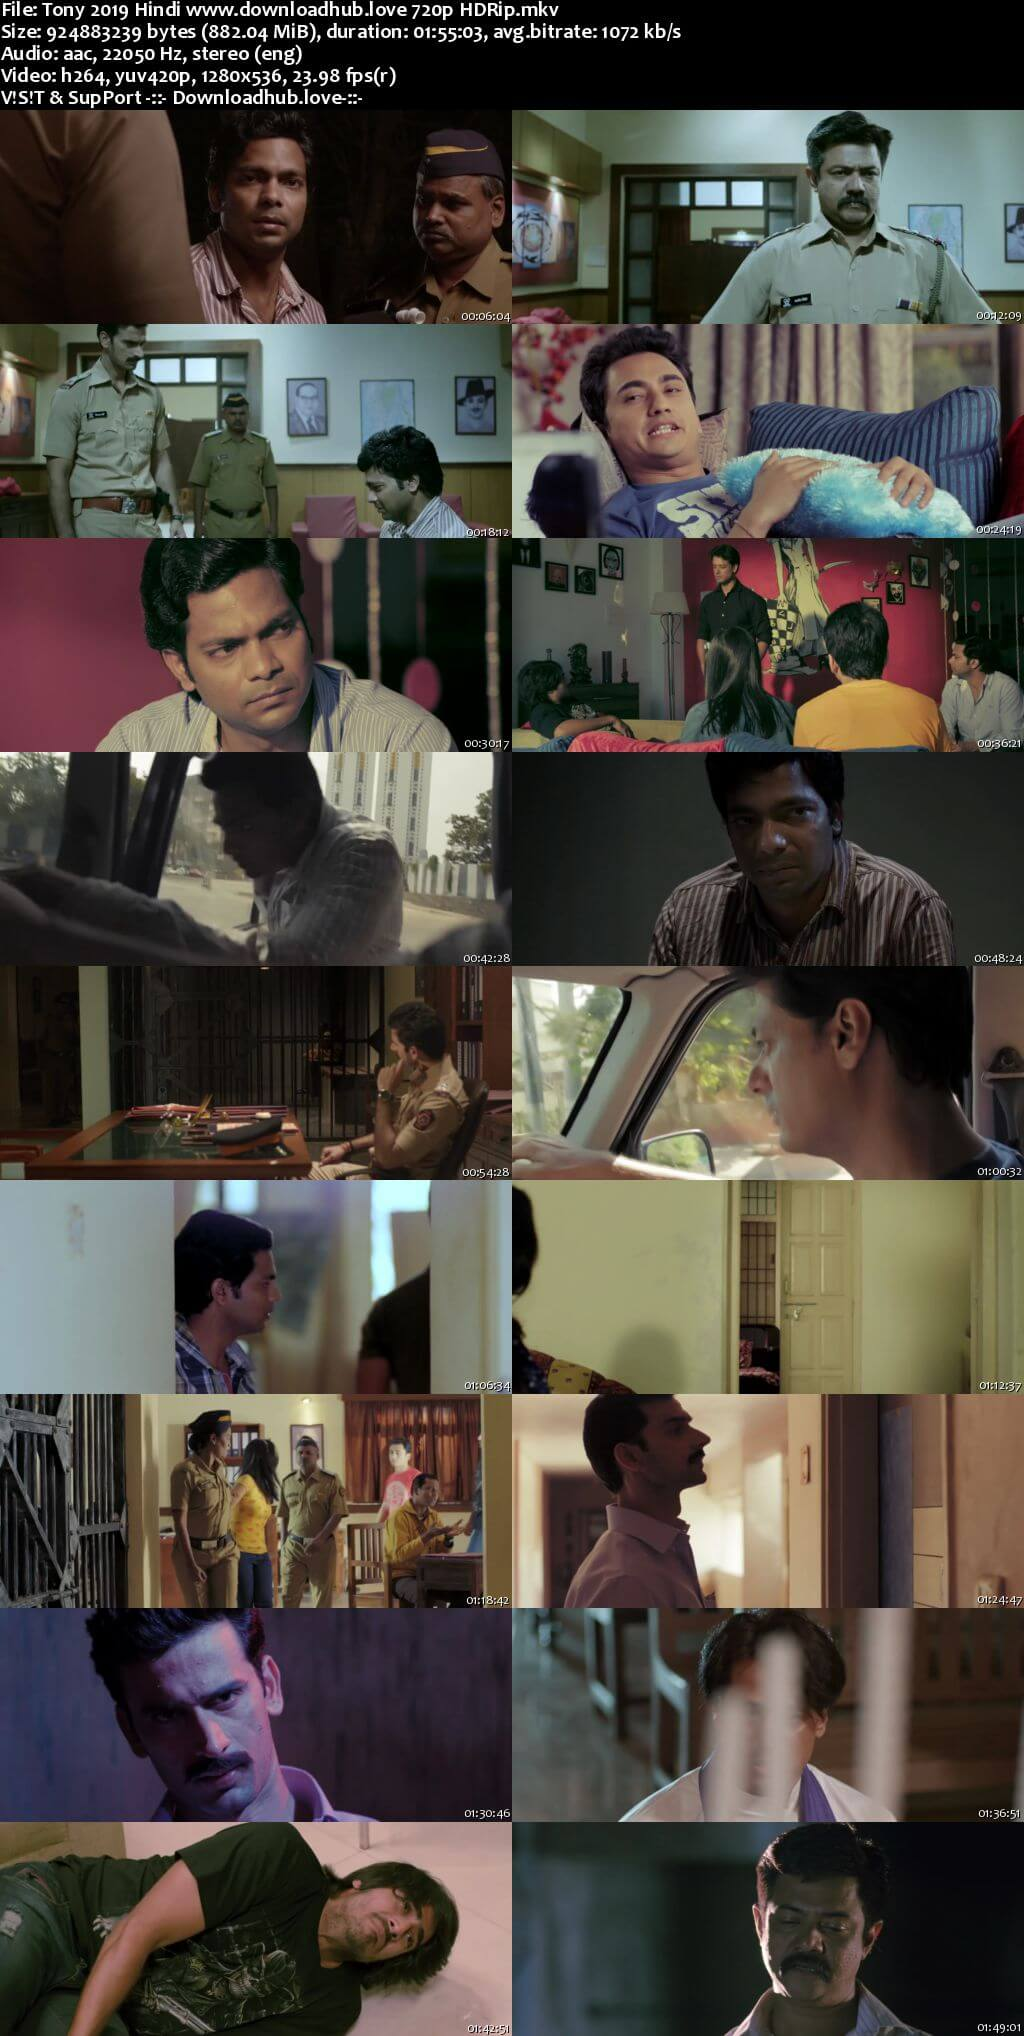 Tony 2019 Hindi 720p HDRip x264